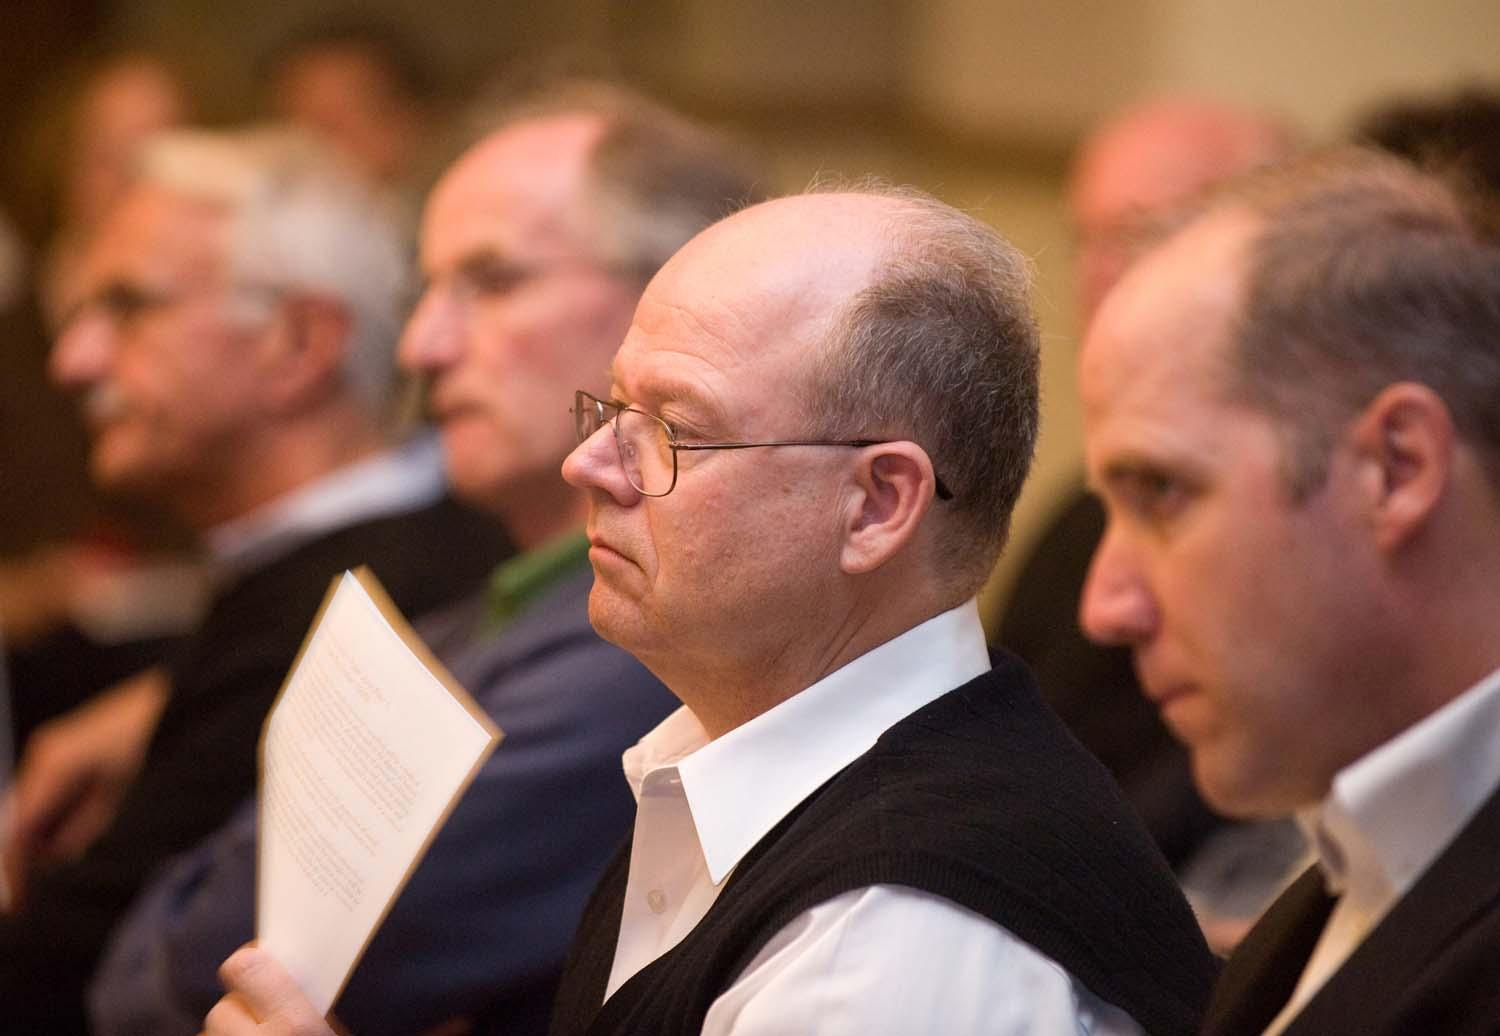 Brother Charles Hilken listened to the views of the speakers.